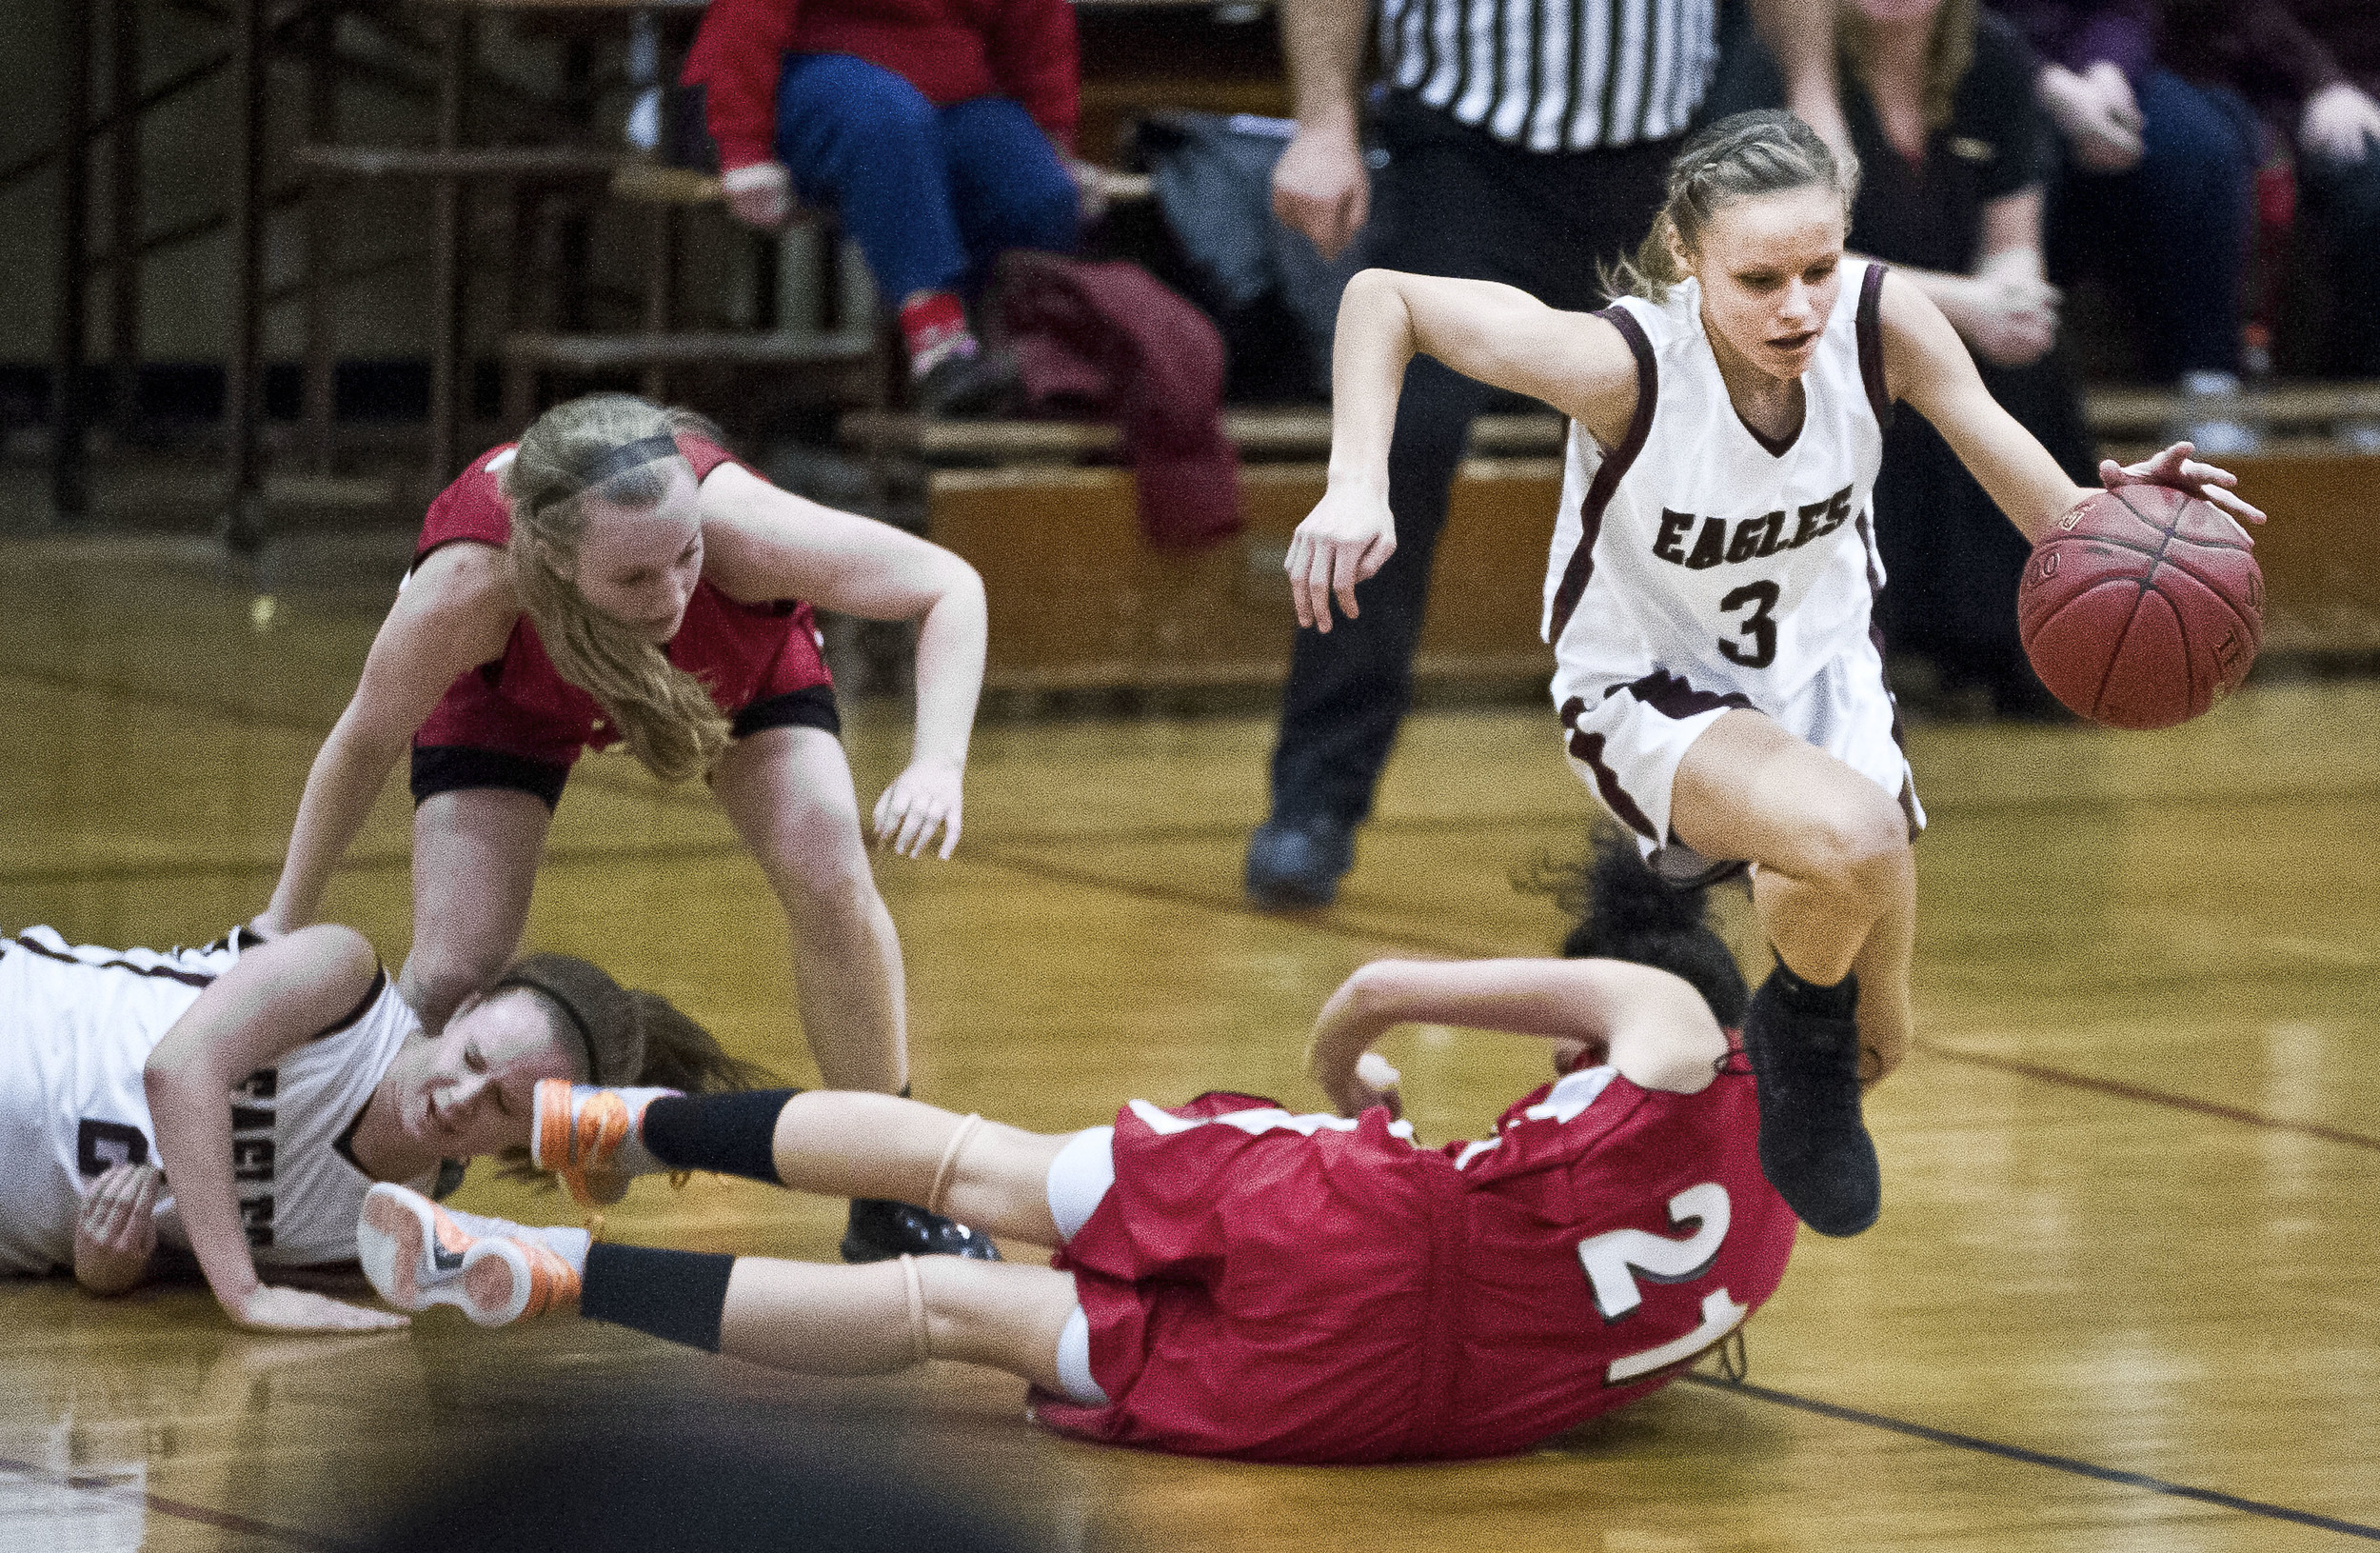 Easthampton's Courtney Urban breaks away from trouble against visiting Athol in Easthampton, Massachusetts.